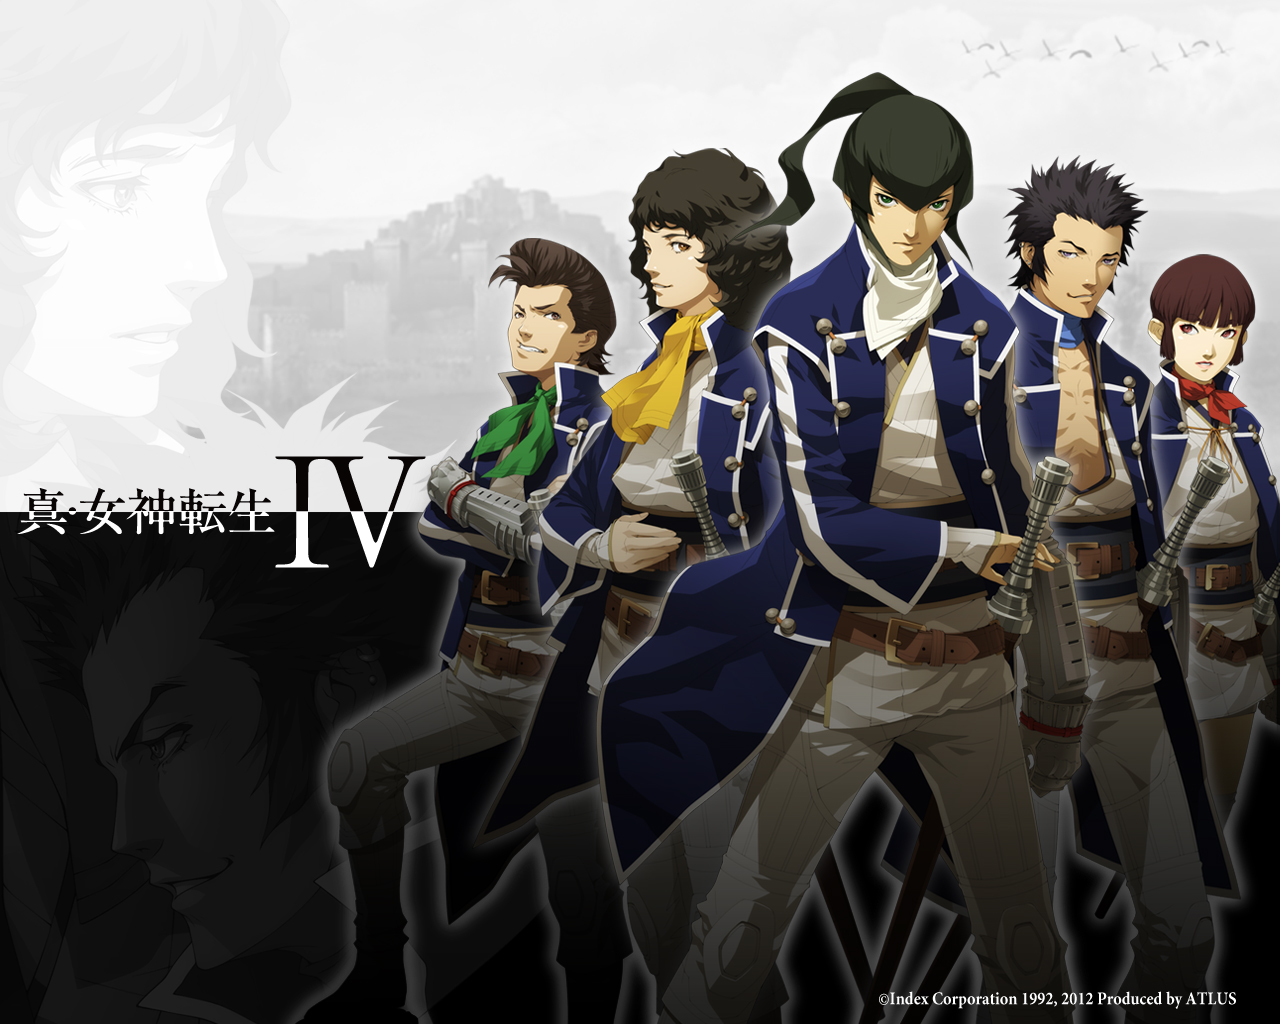 Here Are Some Tips To Help You Through Shin Megami Tensei IV